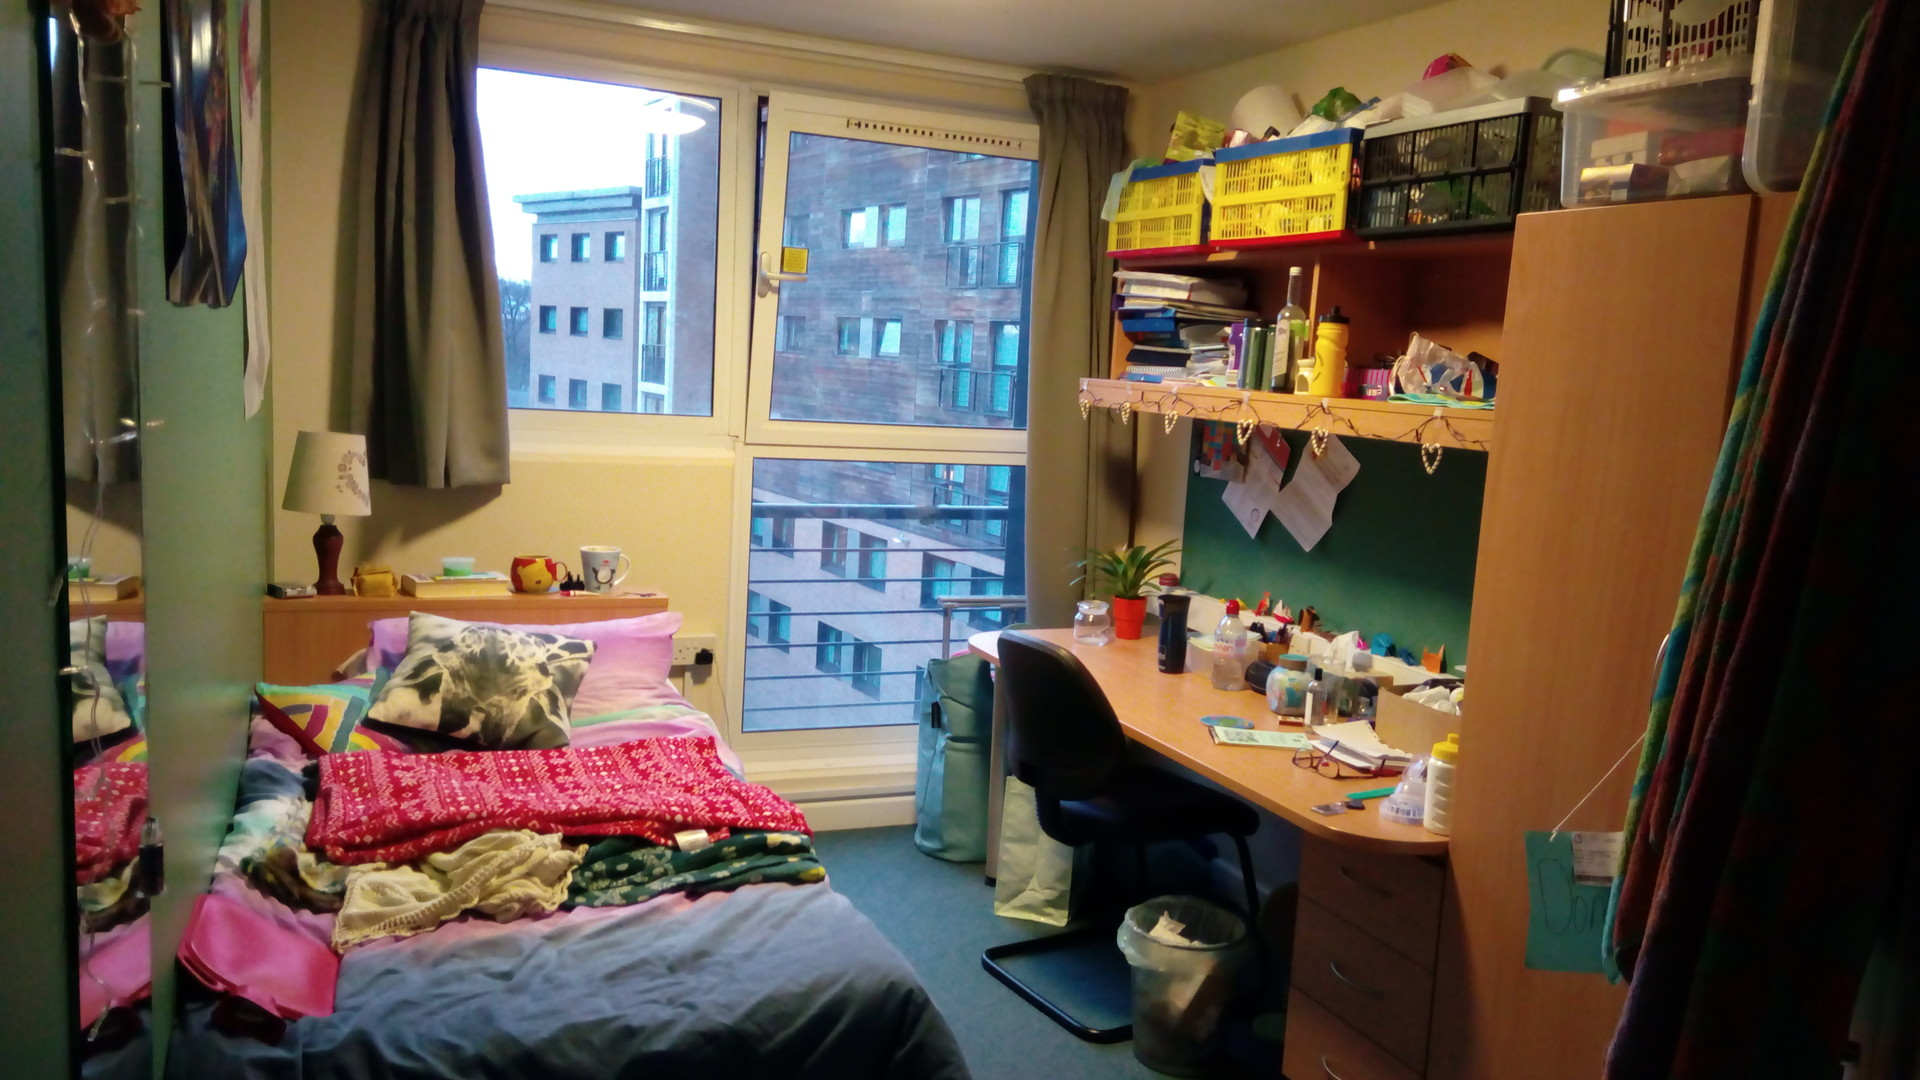 Sunny Ensuite Apartment In Sheffield (Shared Flat) ...